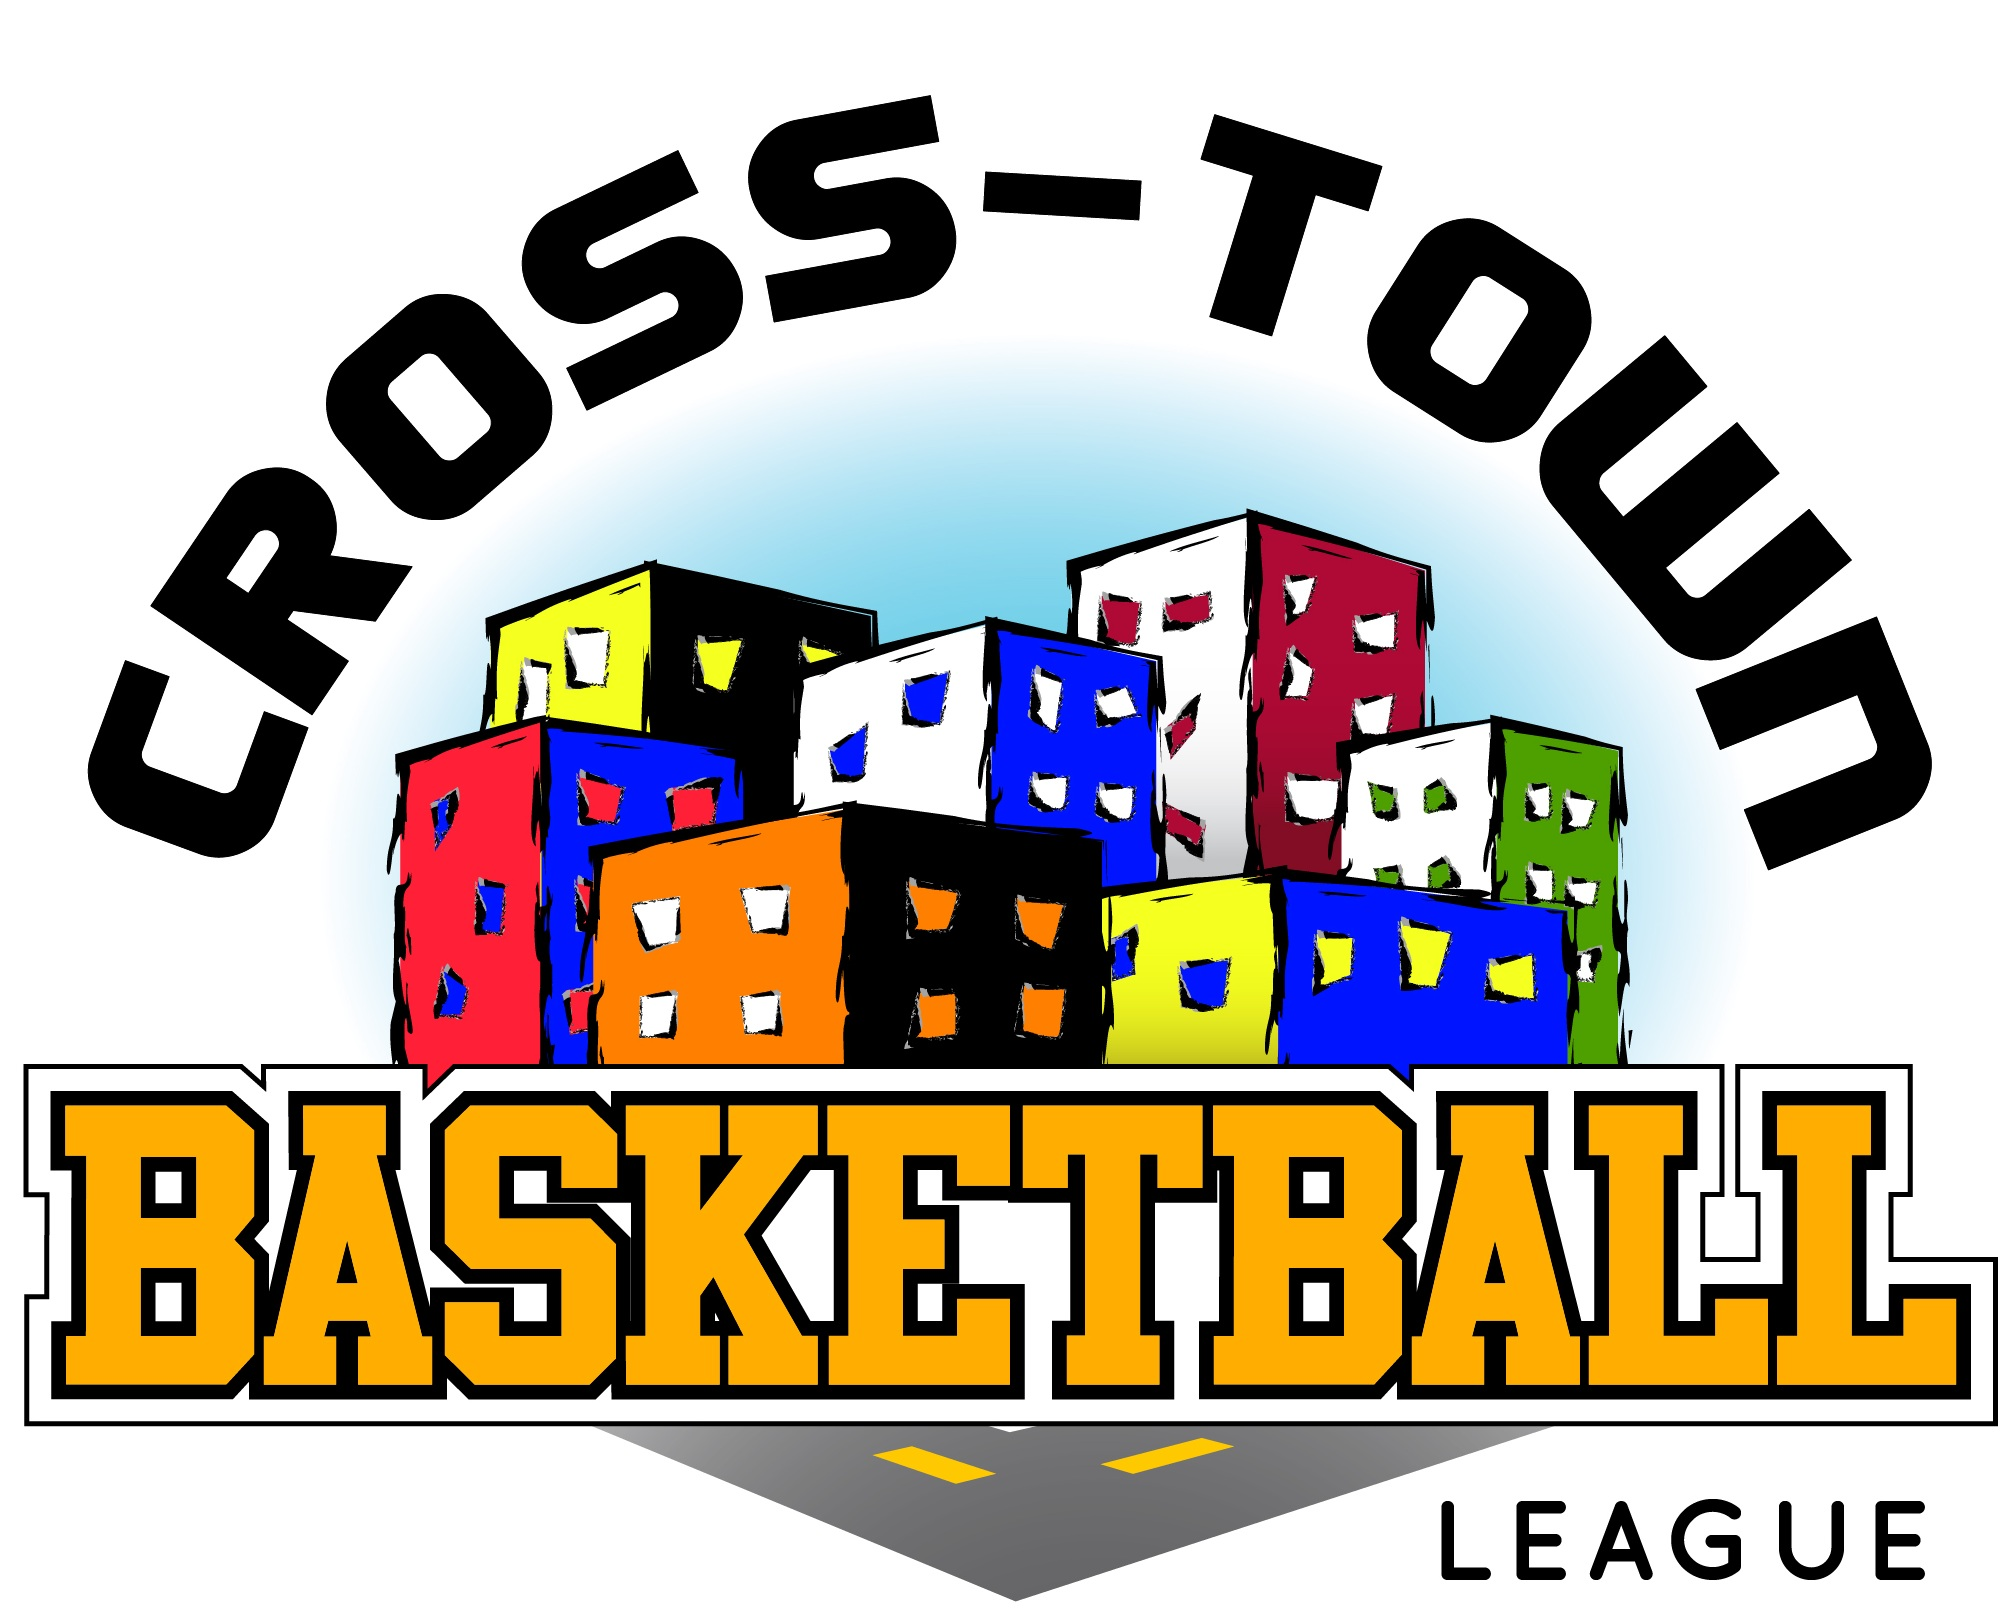 Cross-Town Basketball League - Cross-Town Basketball League is for youth in 7th through 12th grade not playing on a varsity basketball team. The league runs from January to March.League Location: Joshua House Armory926 Logan Avenue | Tyrone, PA 16686